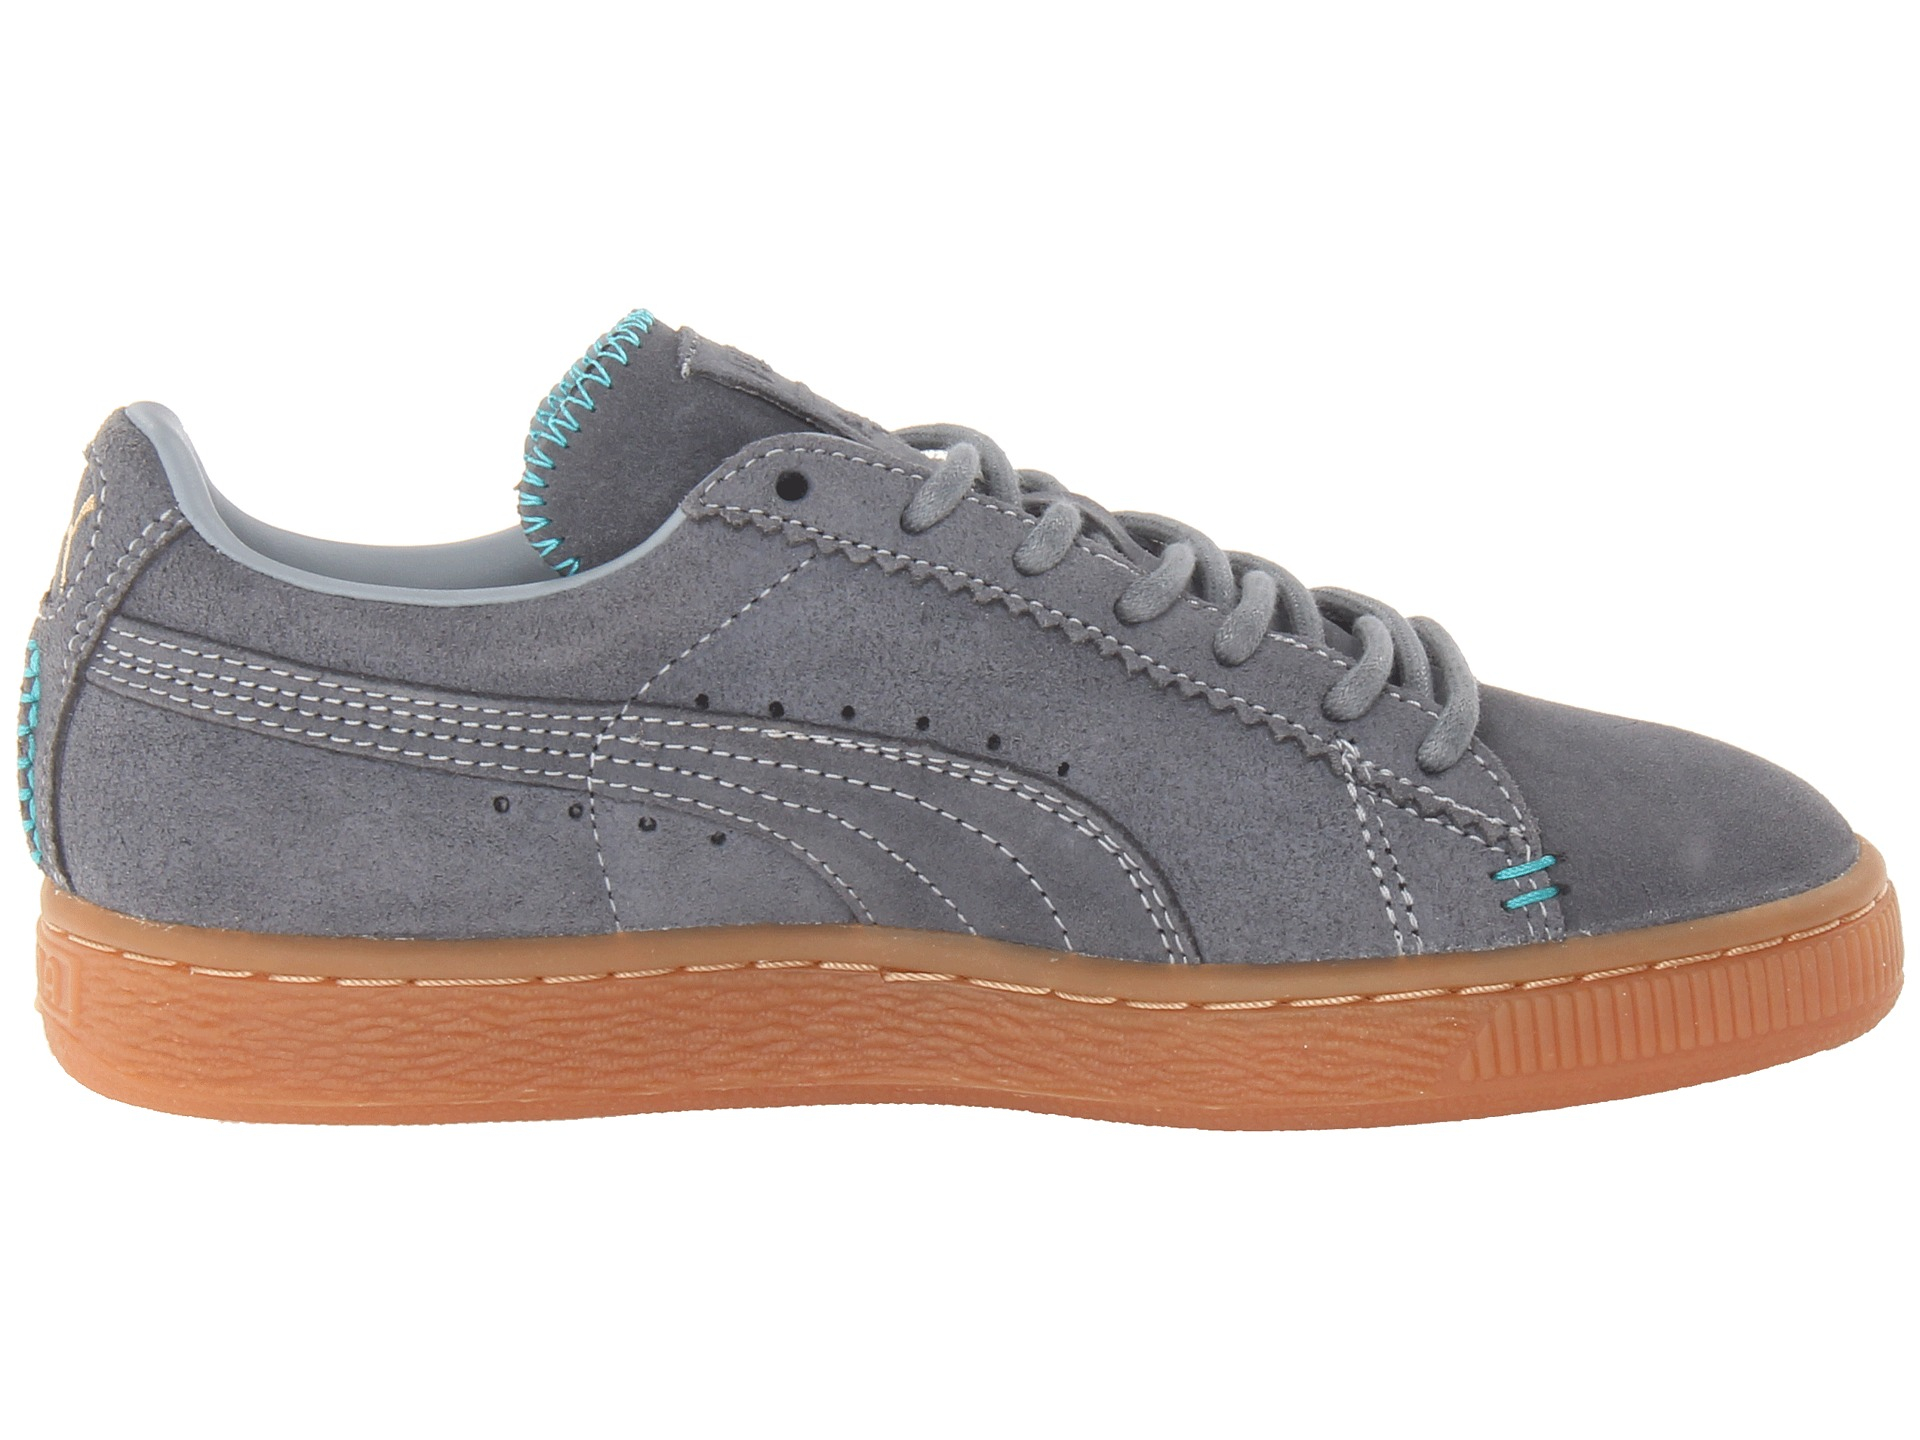 puma suede classic crafted in gray tradewinds bluebird. Black Bedroom Furniture Sets. Home Design Ideas